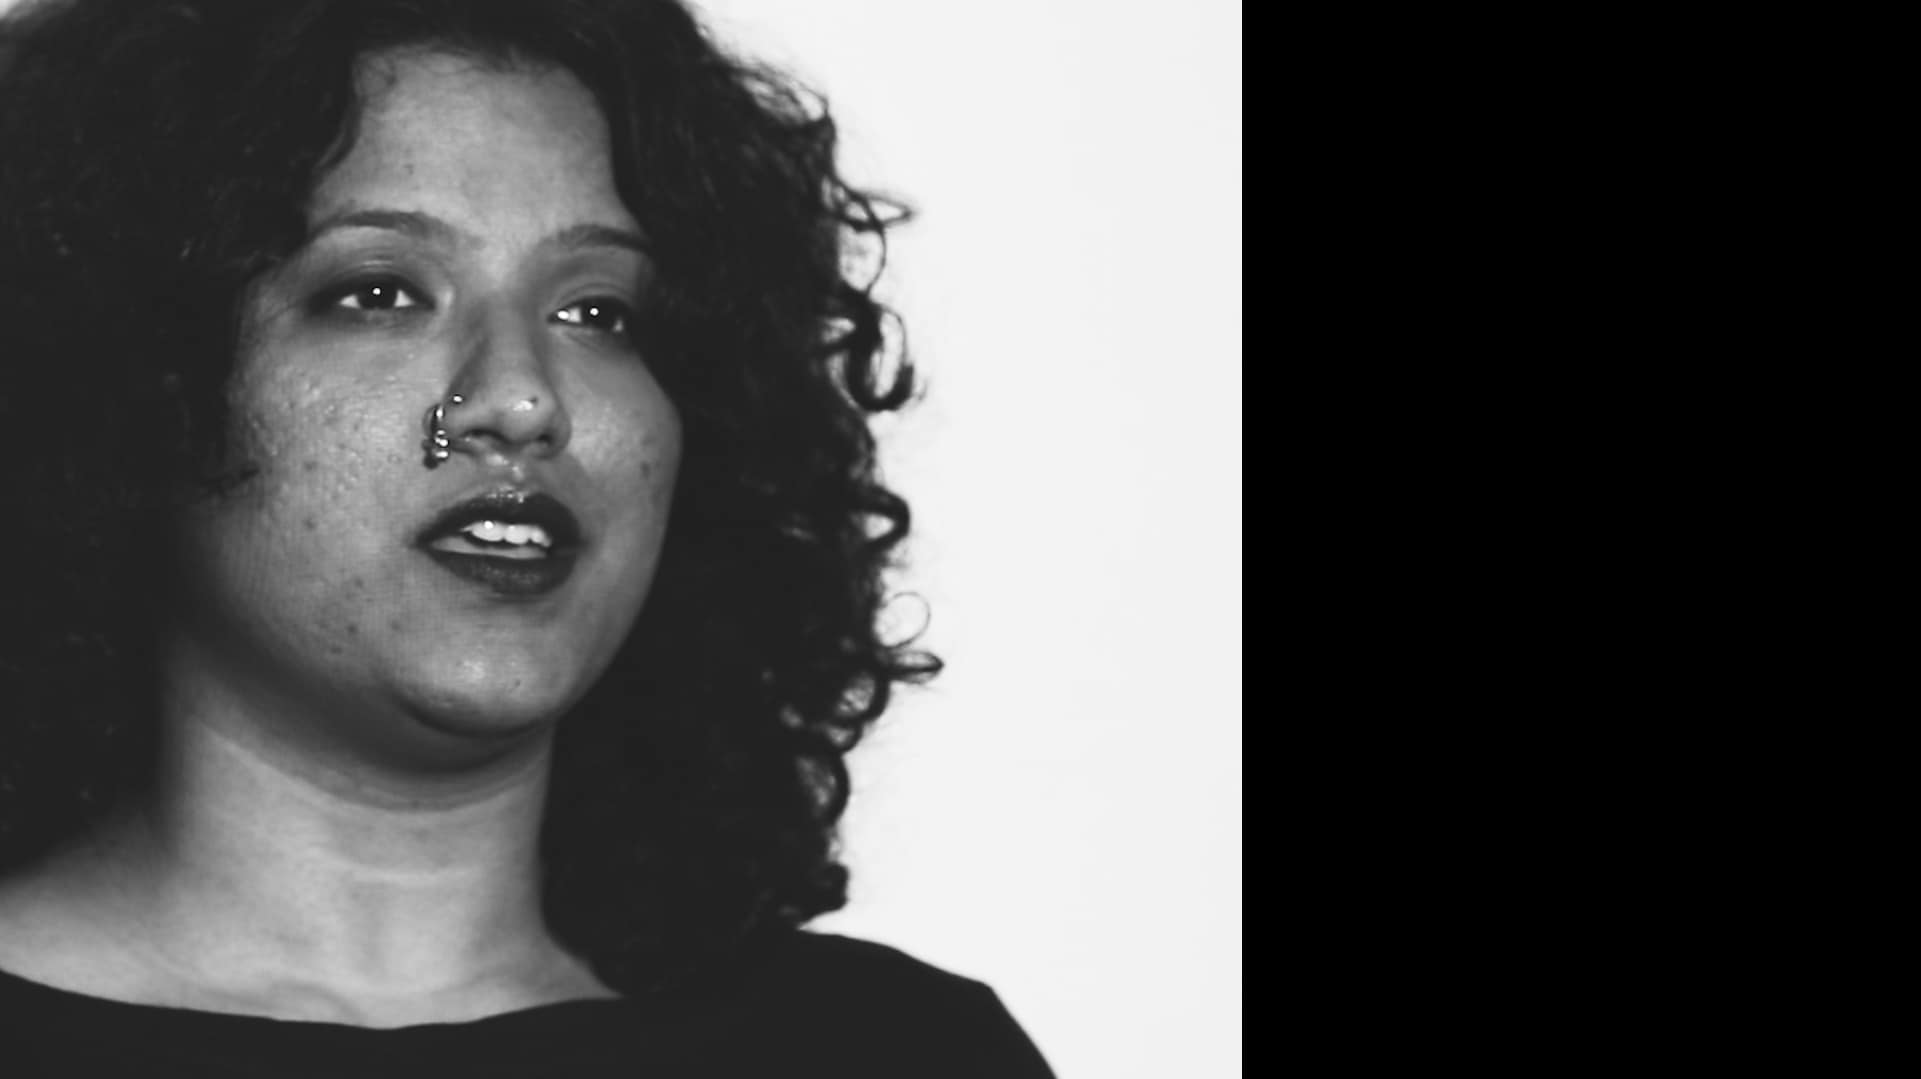 Firstpost Poetry Project: Shruti Sunderraman presents 'How to Love Art' and 'Flowers and Friends'